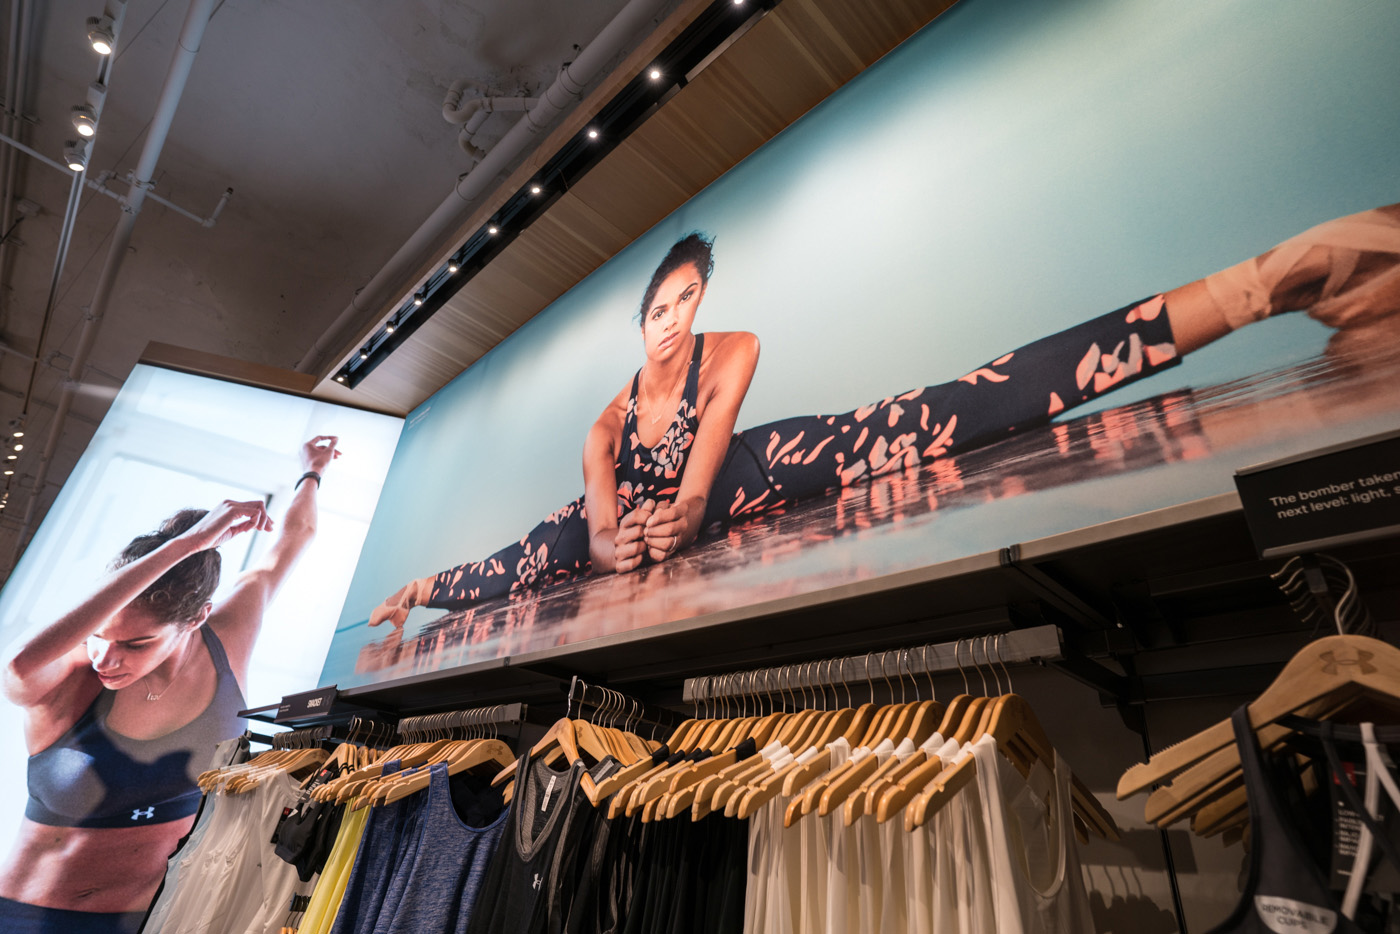 Seg Fabric Signs Make Fitness Look Easy At Under Armour Stores